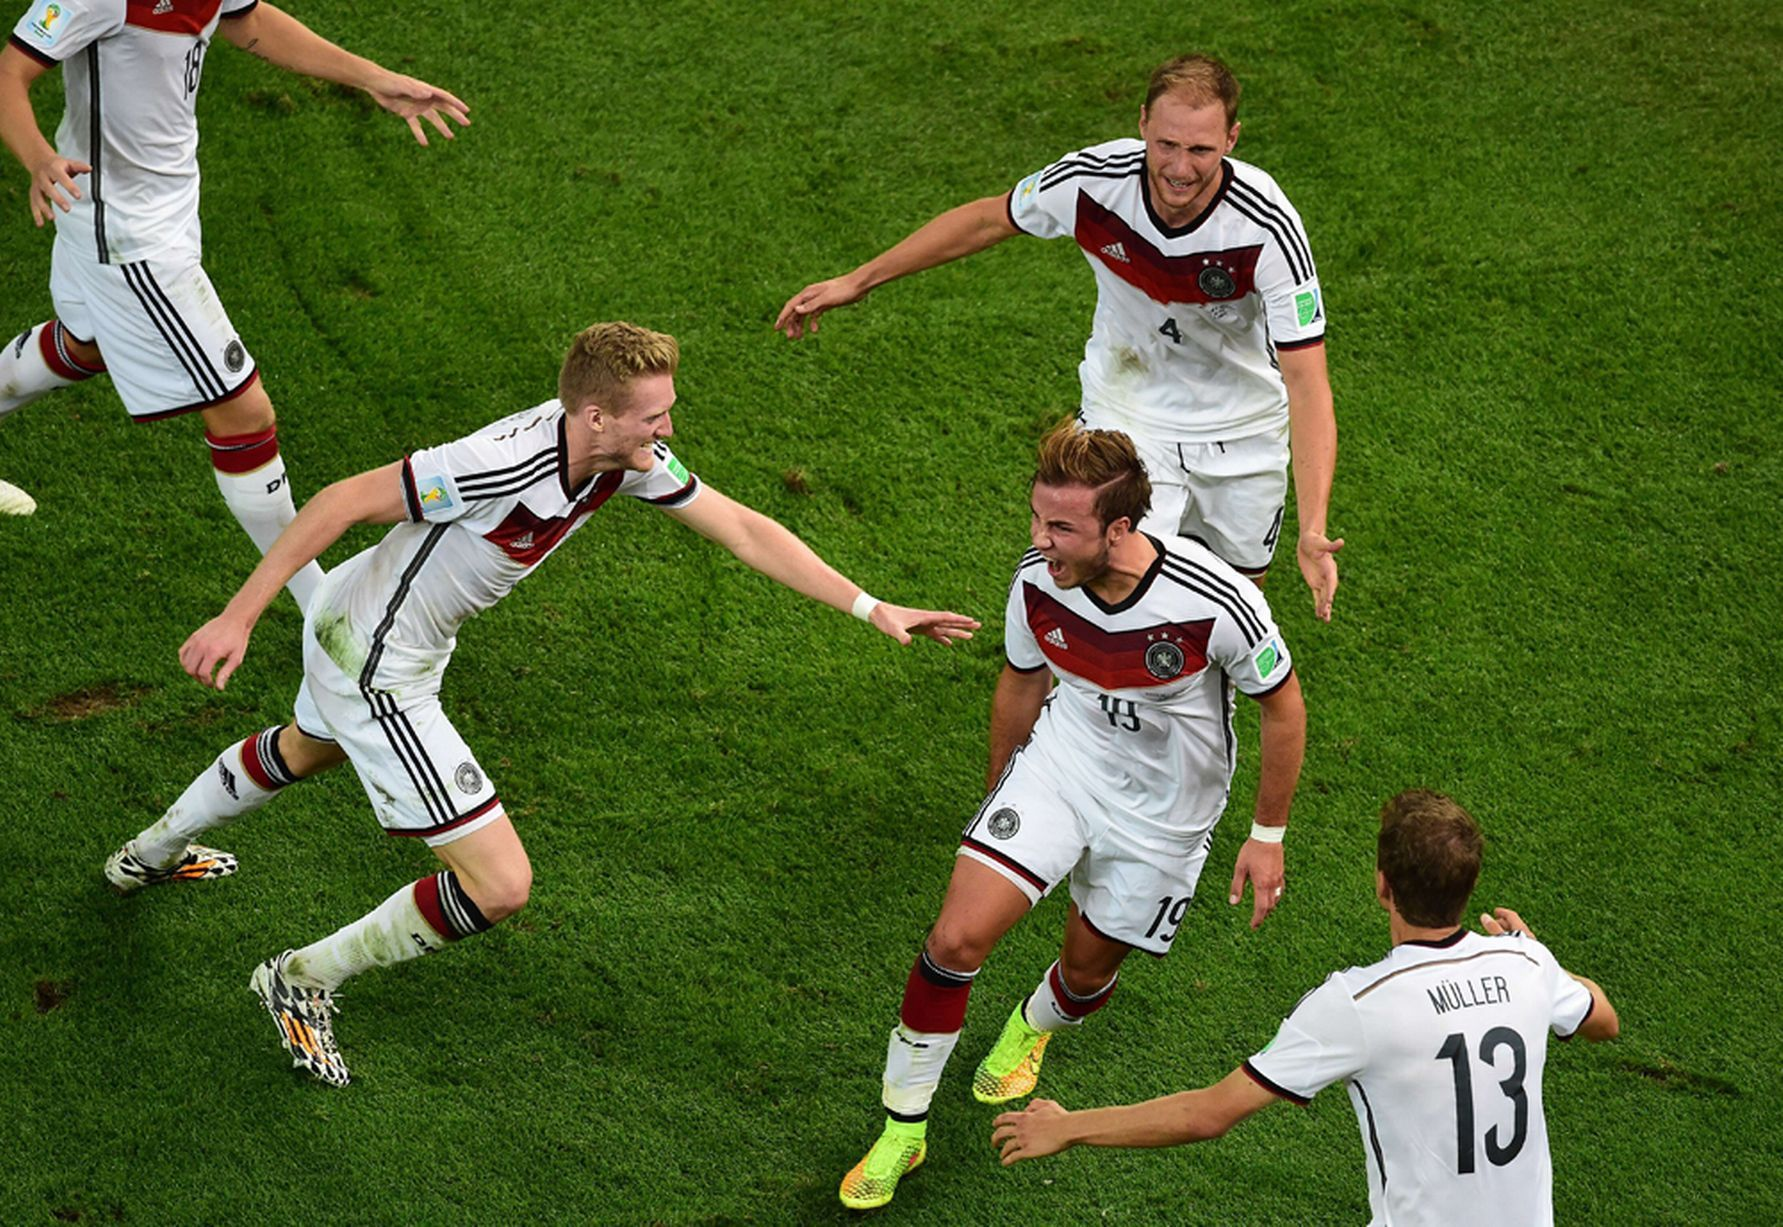 Germany 1 0 Argentina Aet Match Report Gotze Goal Seals History World Cup Victory For Germans Fussball Wm Wm 2014 Weltmeister